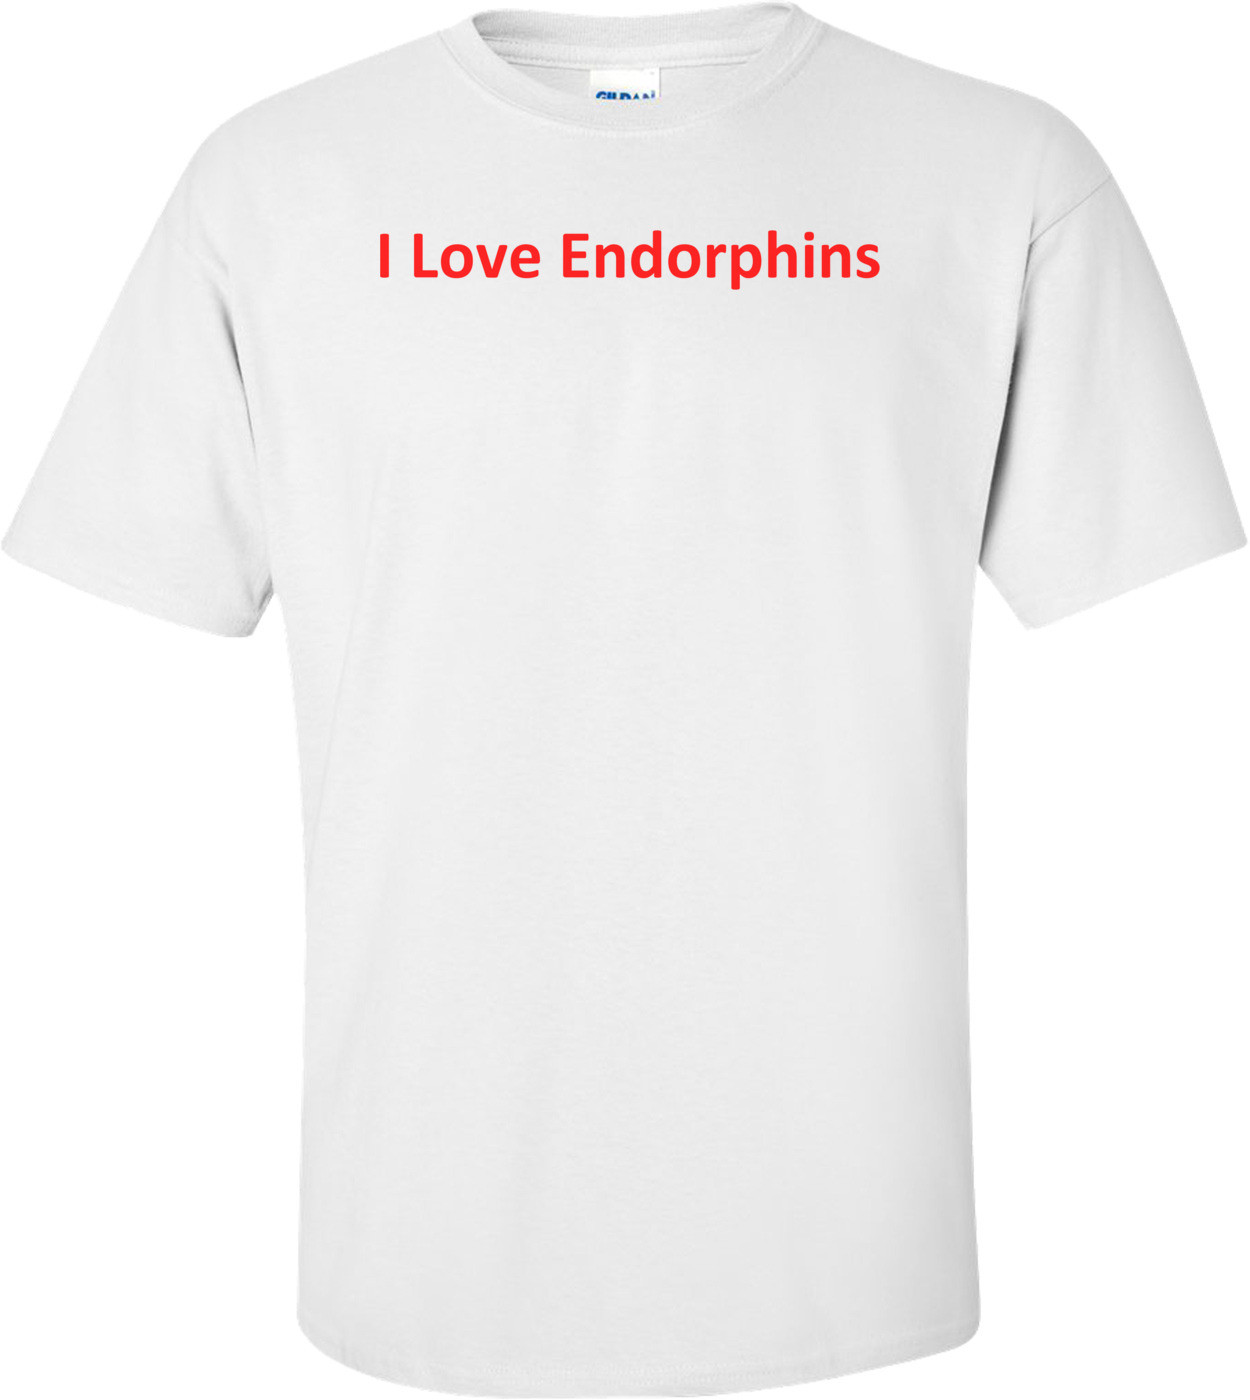 I Love Endorphins T-Shirt